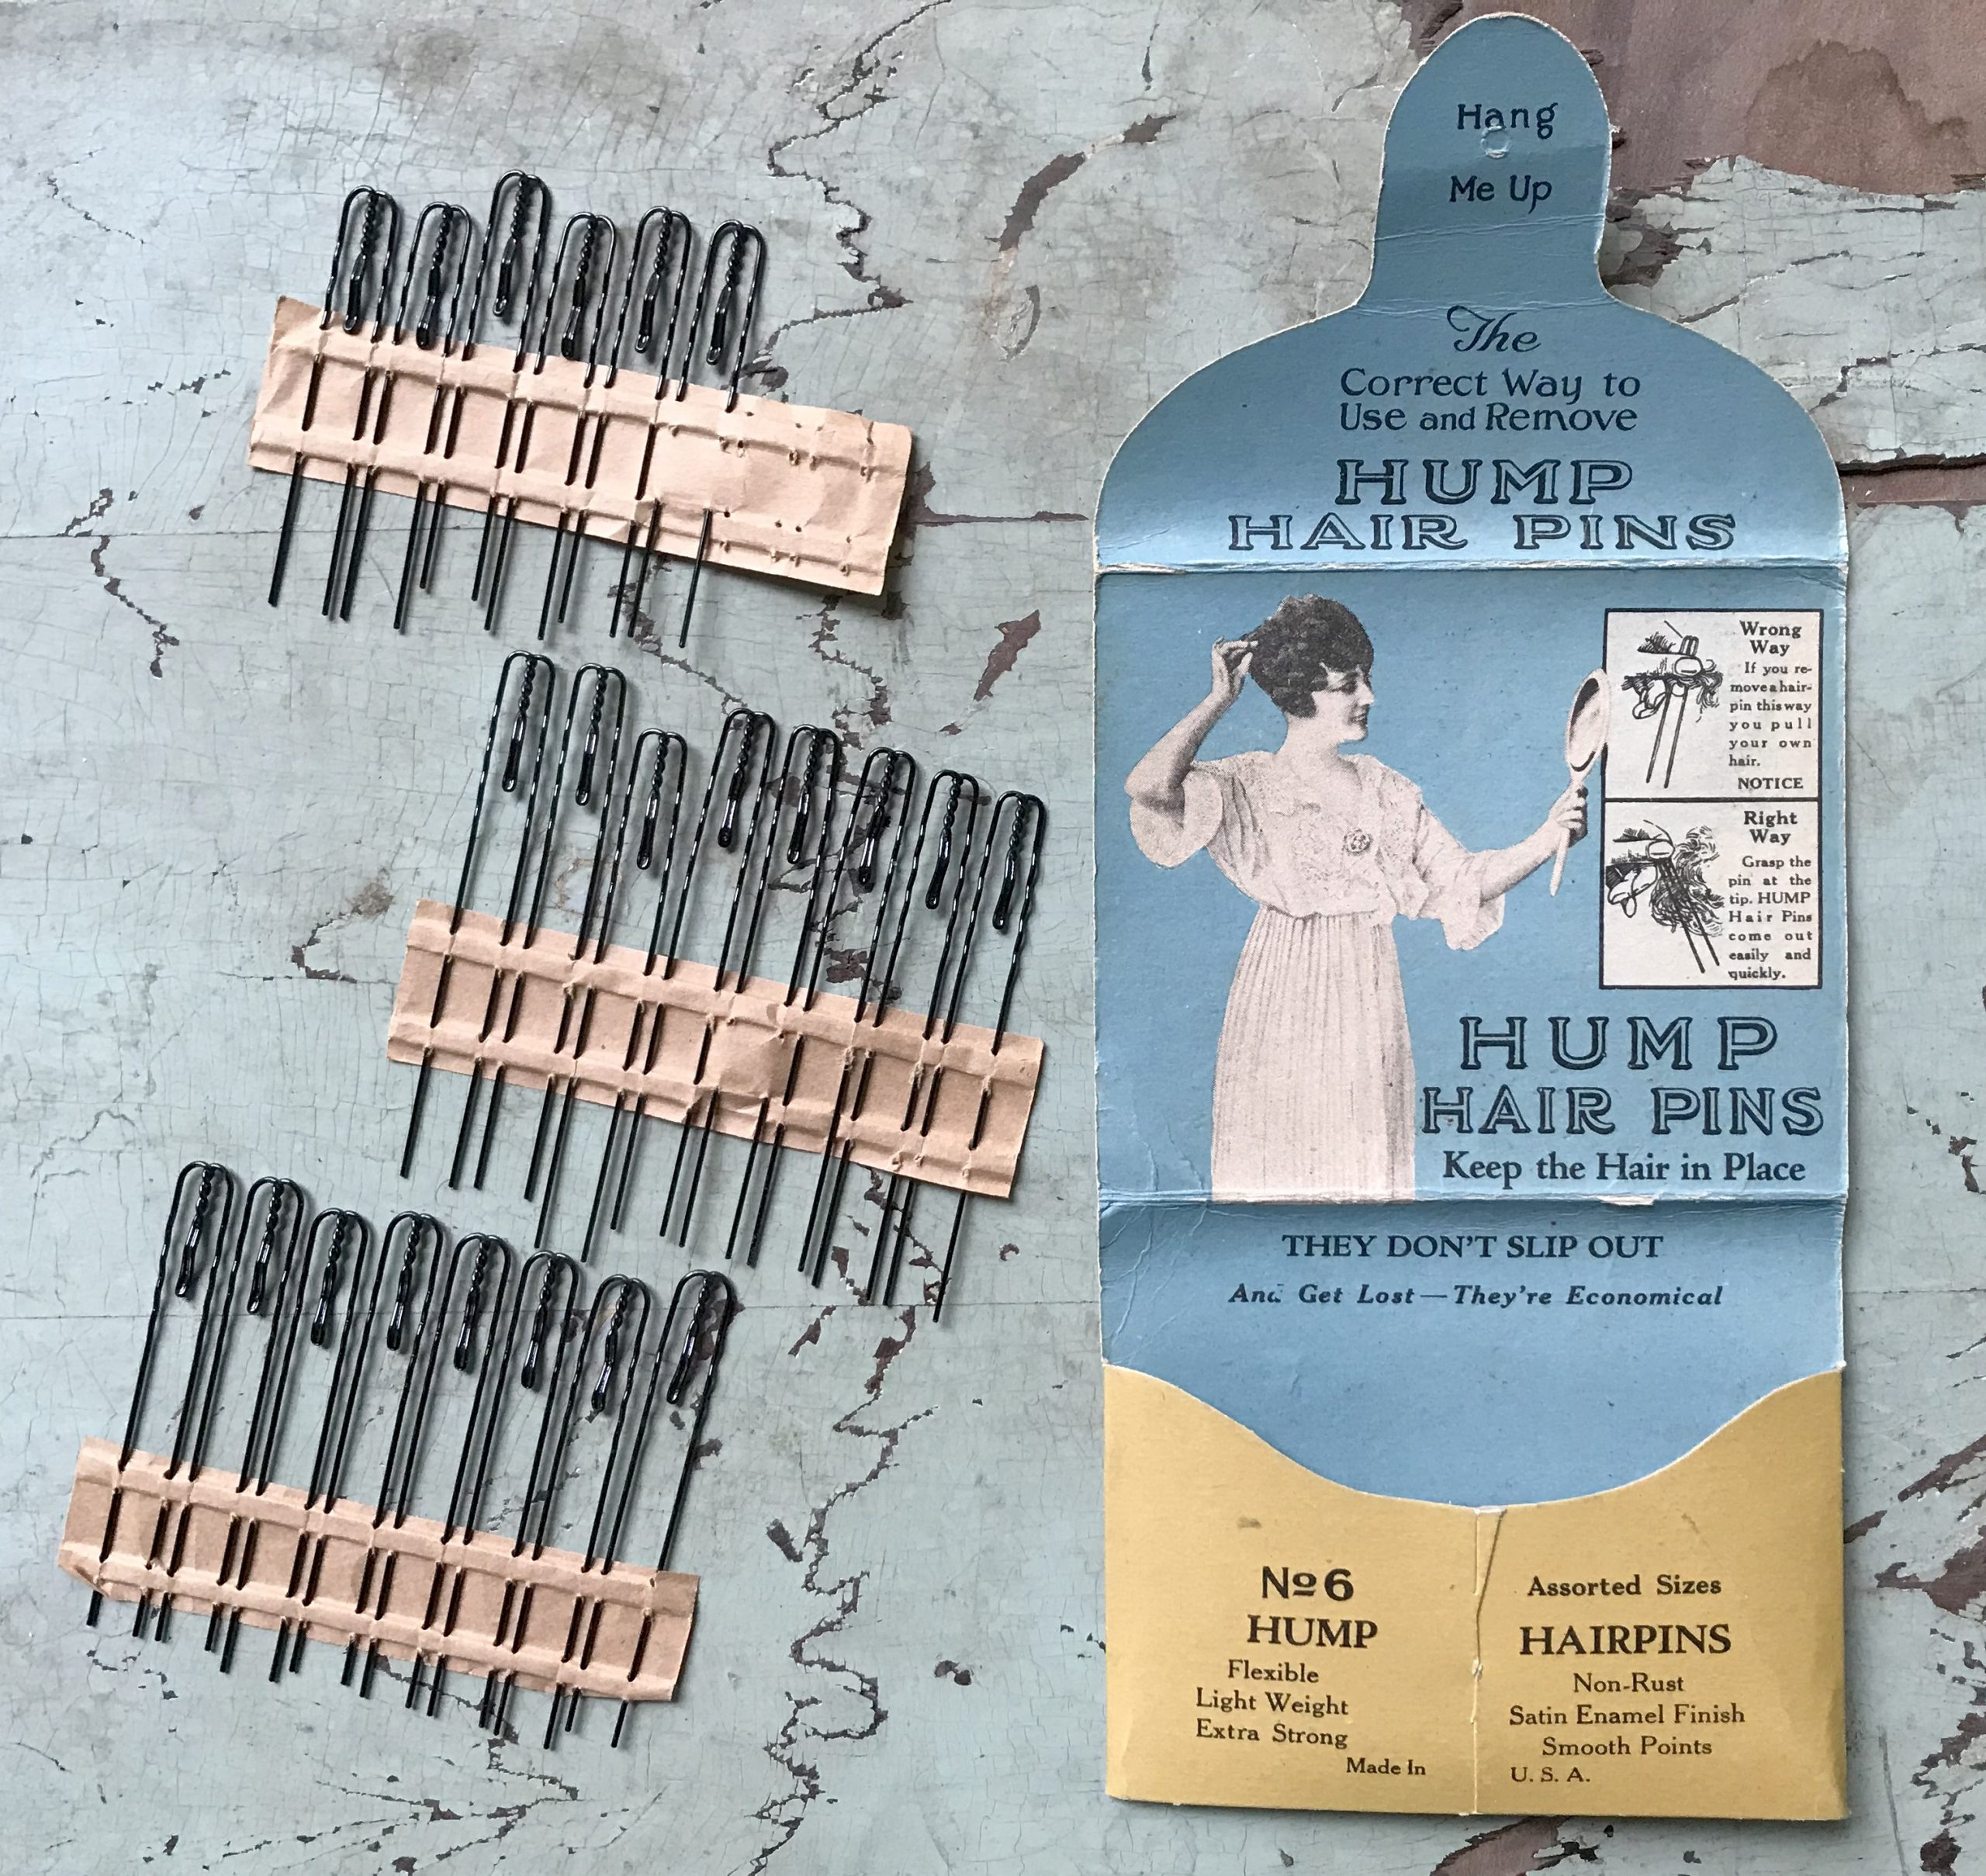 Hump Hair Pin MFG Co., est. 1903